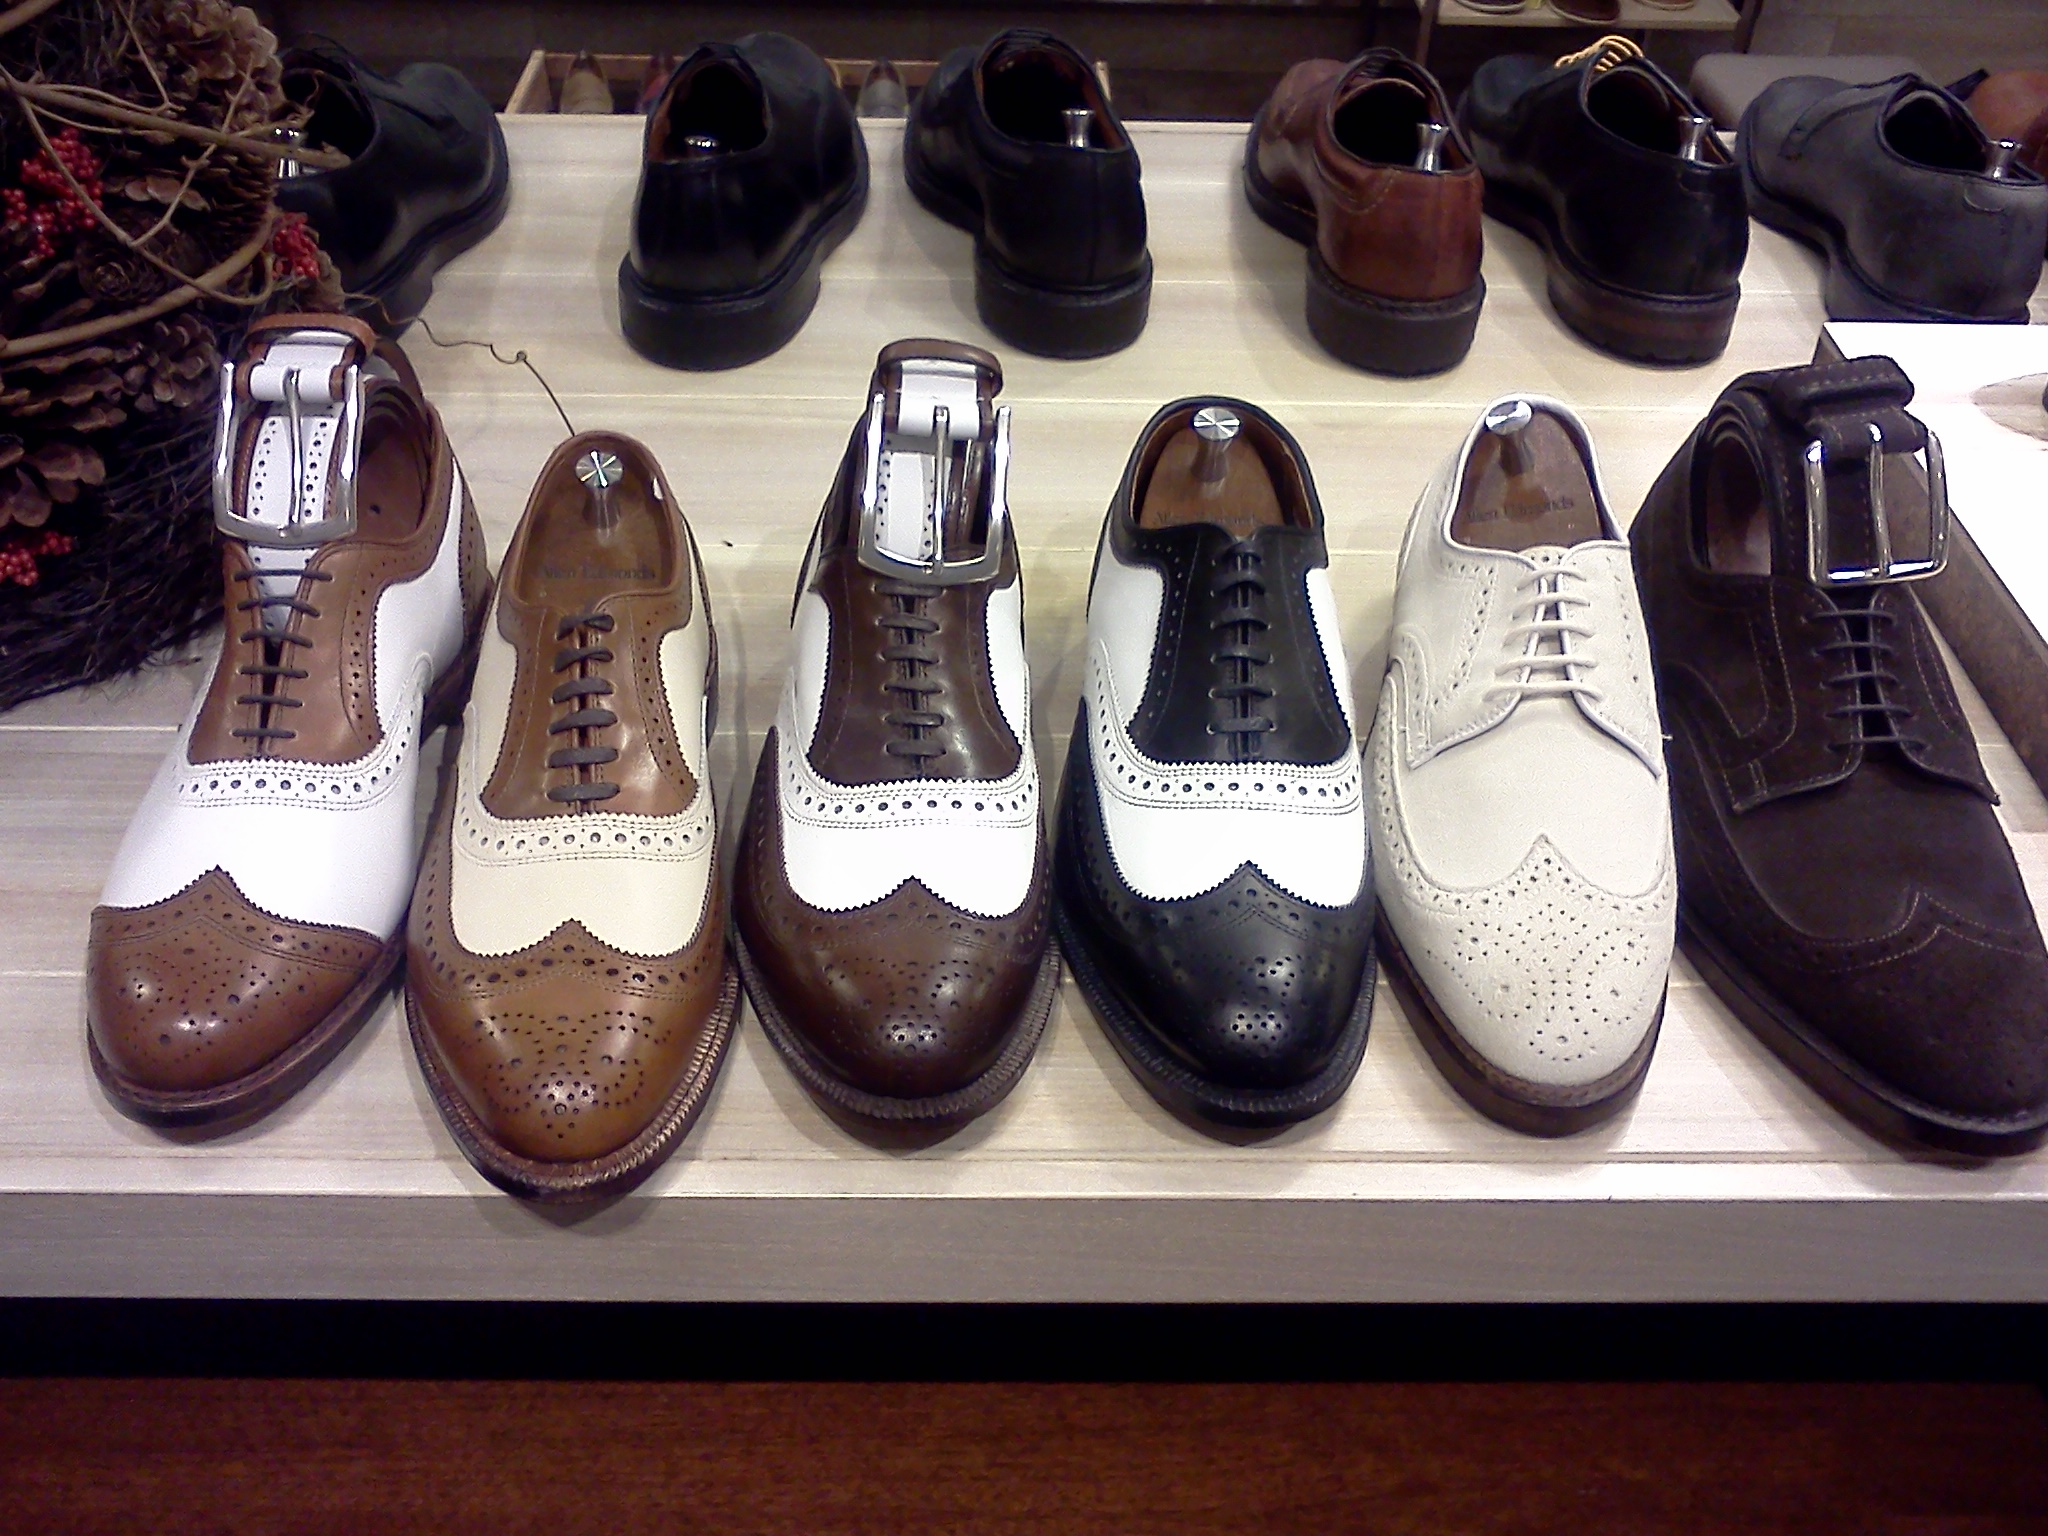 Gentlemen of tradition and distinction have used quality shoes and